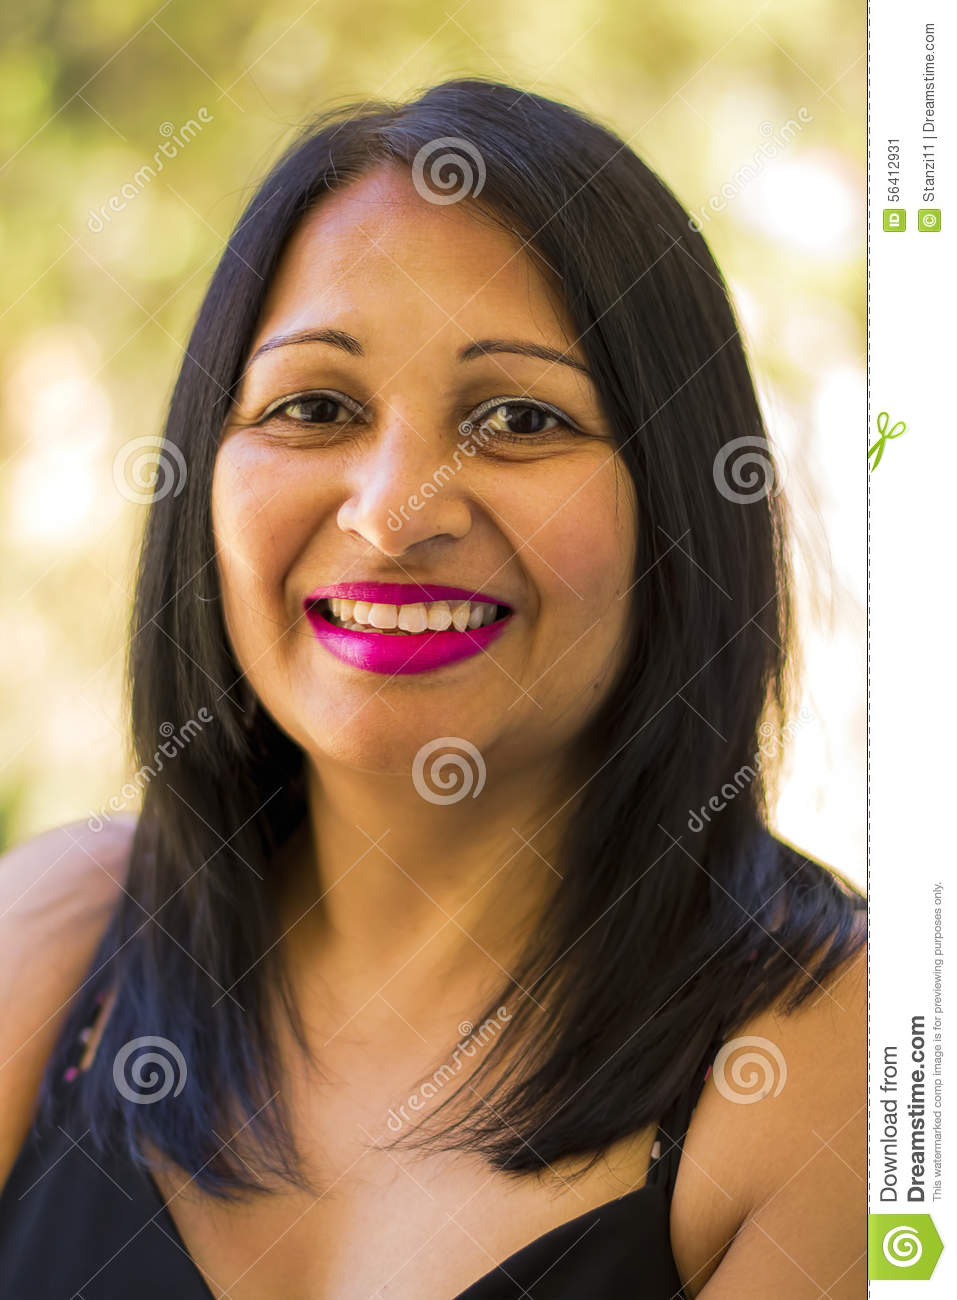 aged women Middle asian